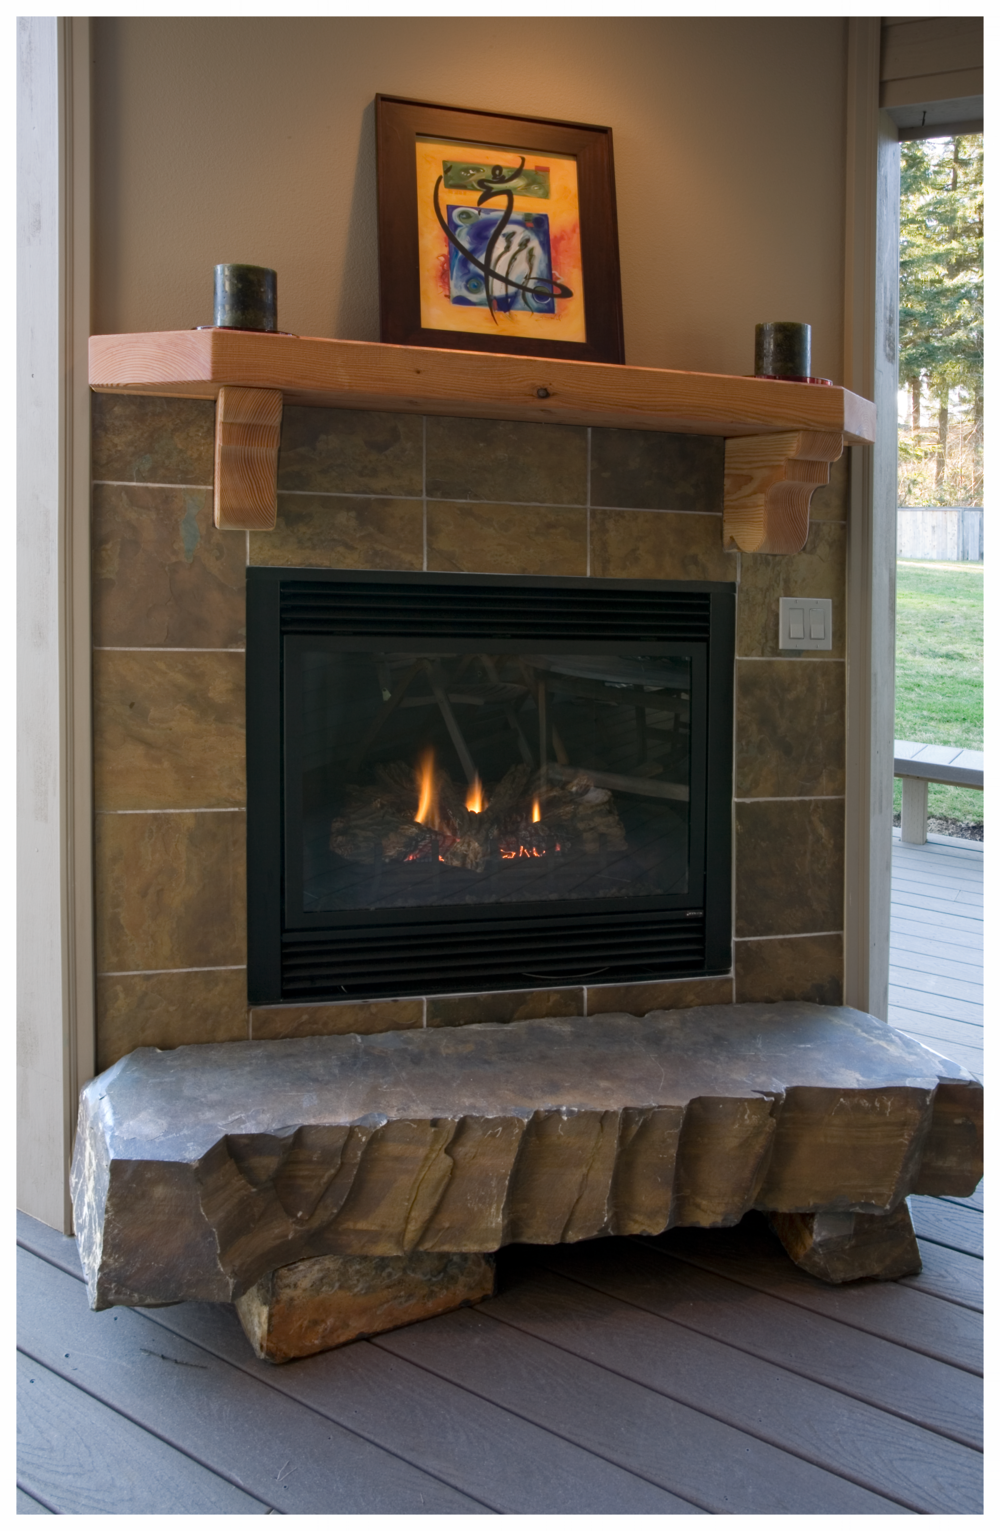 Fireplace 12.png